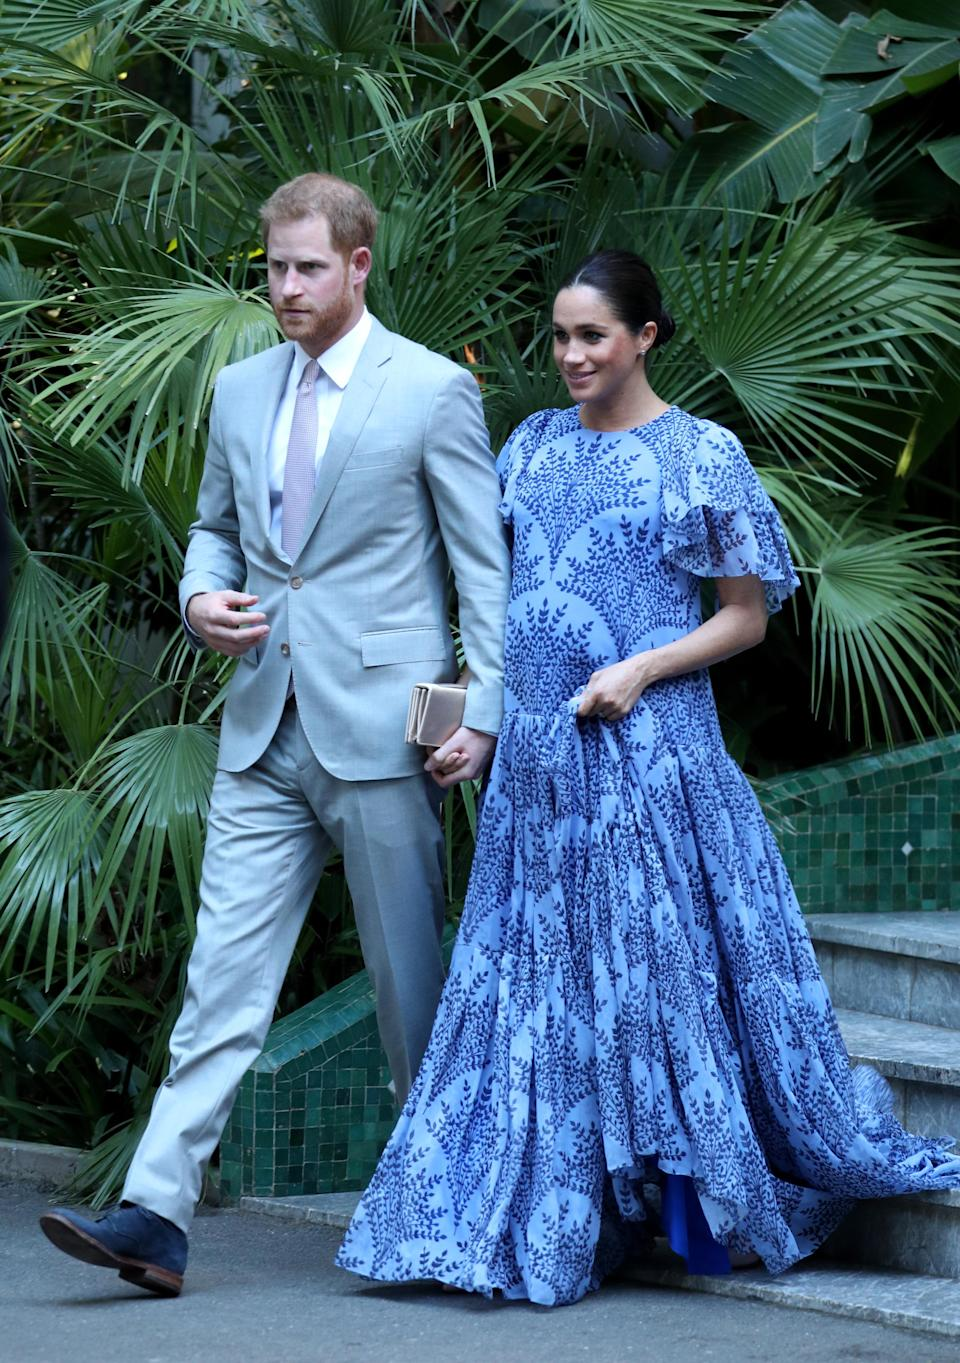 """<p>To meet Mohammed VI of Morocco, the King of Morocco, Meghan looked gorgeous in a bespoke blue floral <a rel=""""nofollow noopener"""" href=""""https://www.modaoperandi.com/carolina-herrera-fw19/floral-printed-silk-chiffon-short-sleeve-gown?utm_campaign=productads&mid=37385&utm_medium=Linkshare&utm_source=ShopStyle++Collective&utm_content=*2nGiS3mv0Y&siteID=.2nGiS3mv0Y-yR7IoJbiR3YbR6Mg.O_85w"""" target=""""_blank"""" data-ylk=""""slk:Carolina Herrera gown"""" class=""""link rapid-noclick-resp"""">Carolina Herrera gown</a> with nude pumps and her gold satin Dior 'Bee' clutch. She also rewore her Cartier diamond and white gold wedding earrings. [Photo: Getty] </p>"""